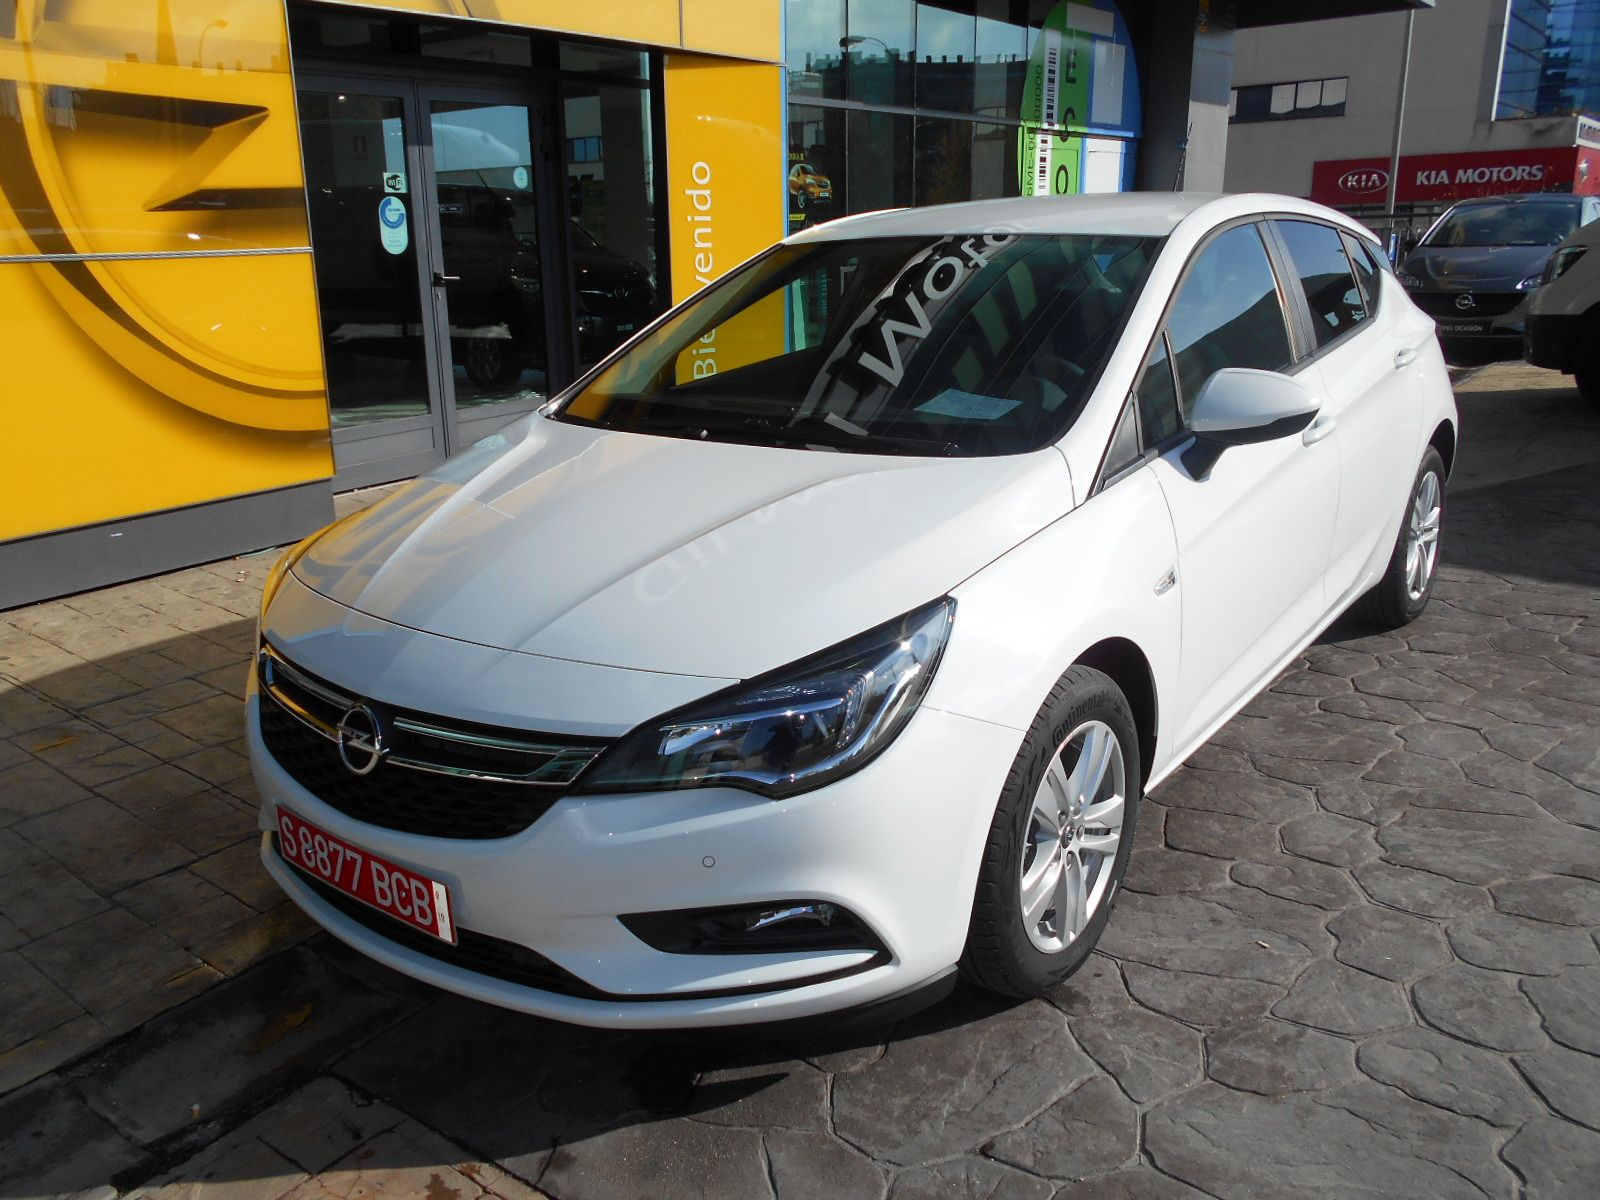 OPEL Astra 1.4 Turbo SS 92kW 125CV Selective 5p. 15.000 €